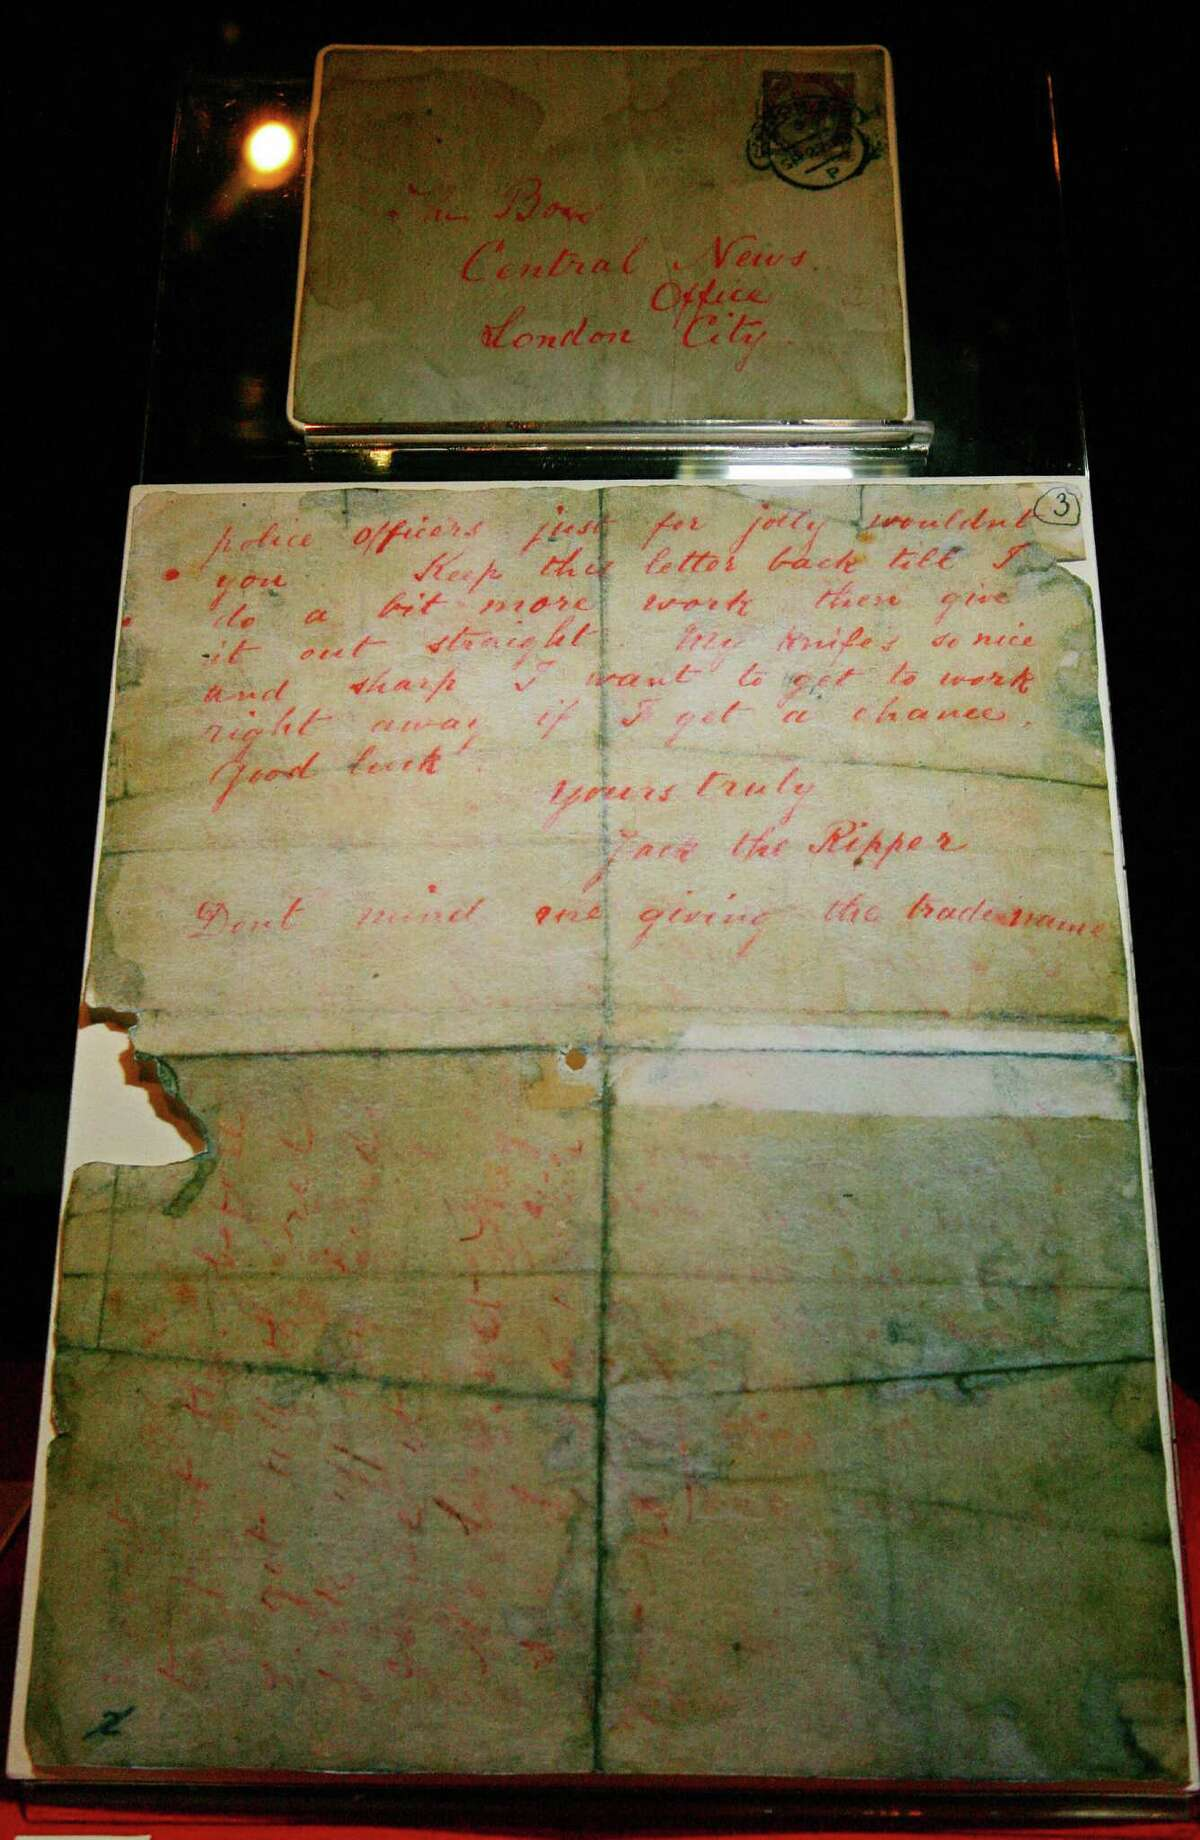 A letter allegedly written by Jack the Ripper and sent to a London news agency on Spetember 25, 1888 is displayed at a press preview of the 'Jack the Ripper and the East End' exhibition at Museum in Docklands, in London, on May 14, 2008.